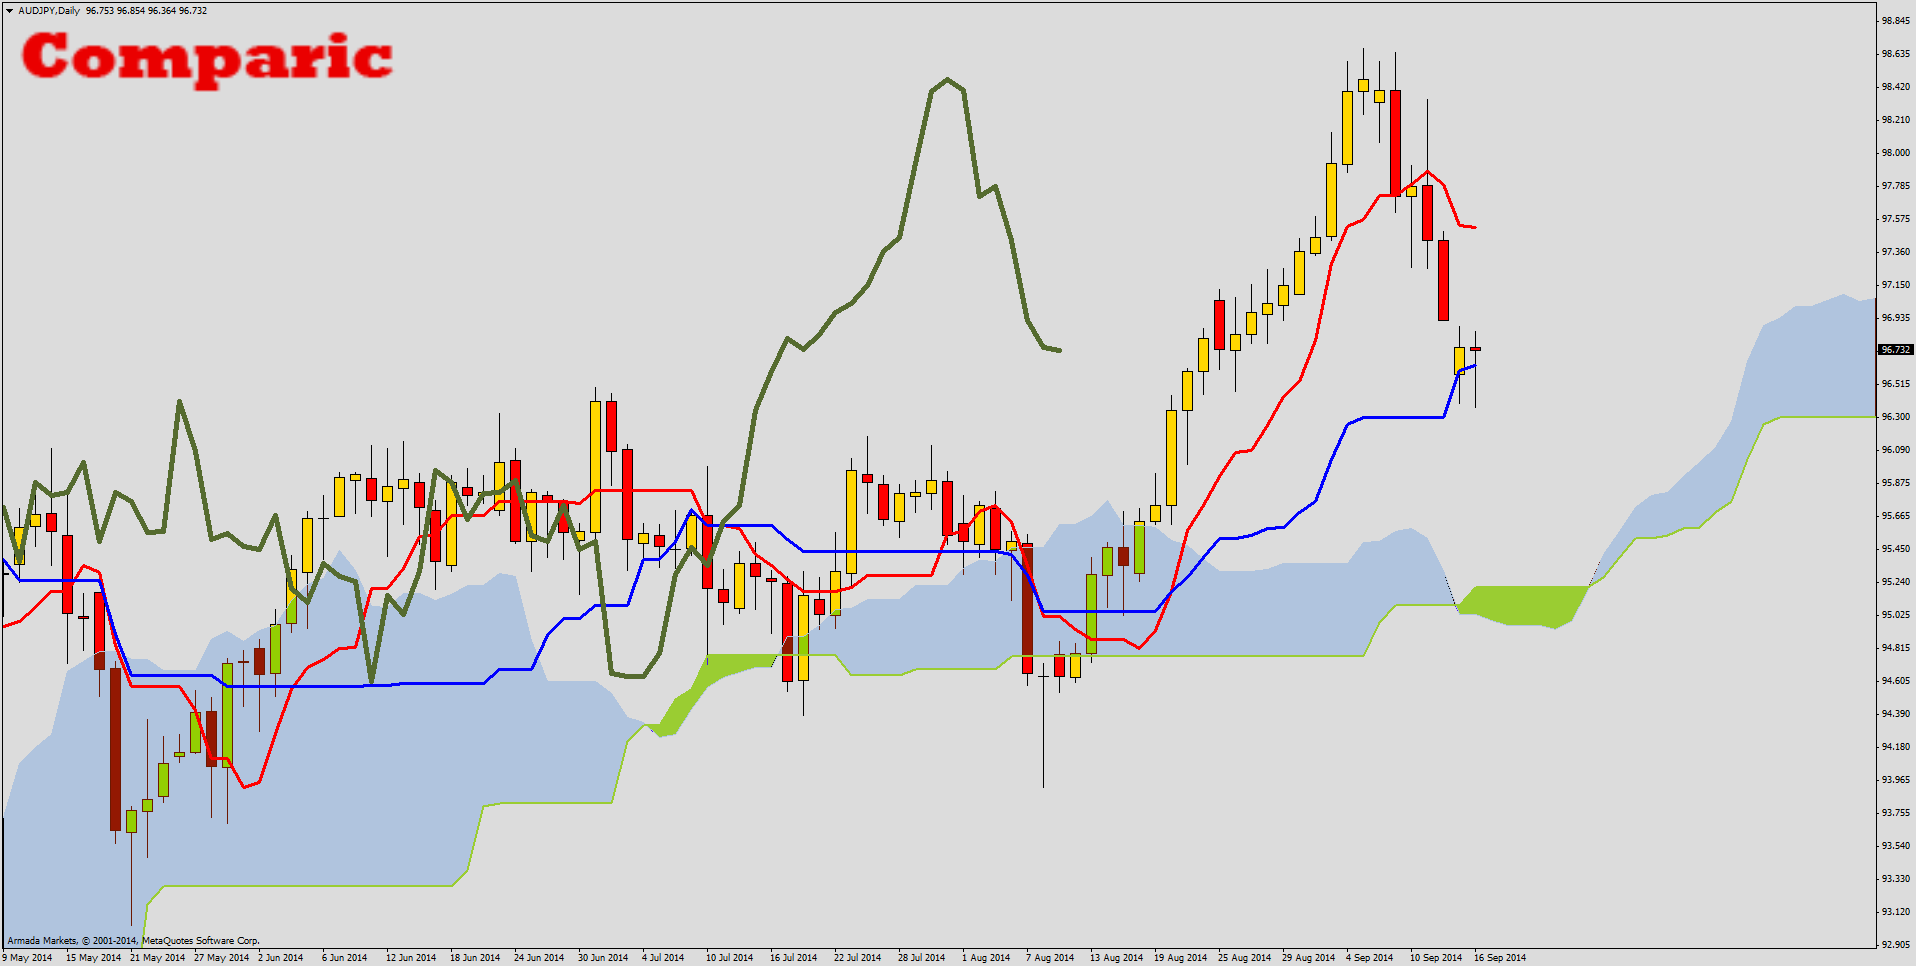 Ichimoku Price Action